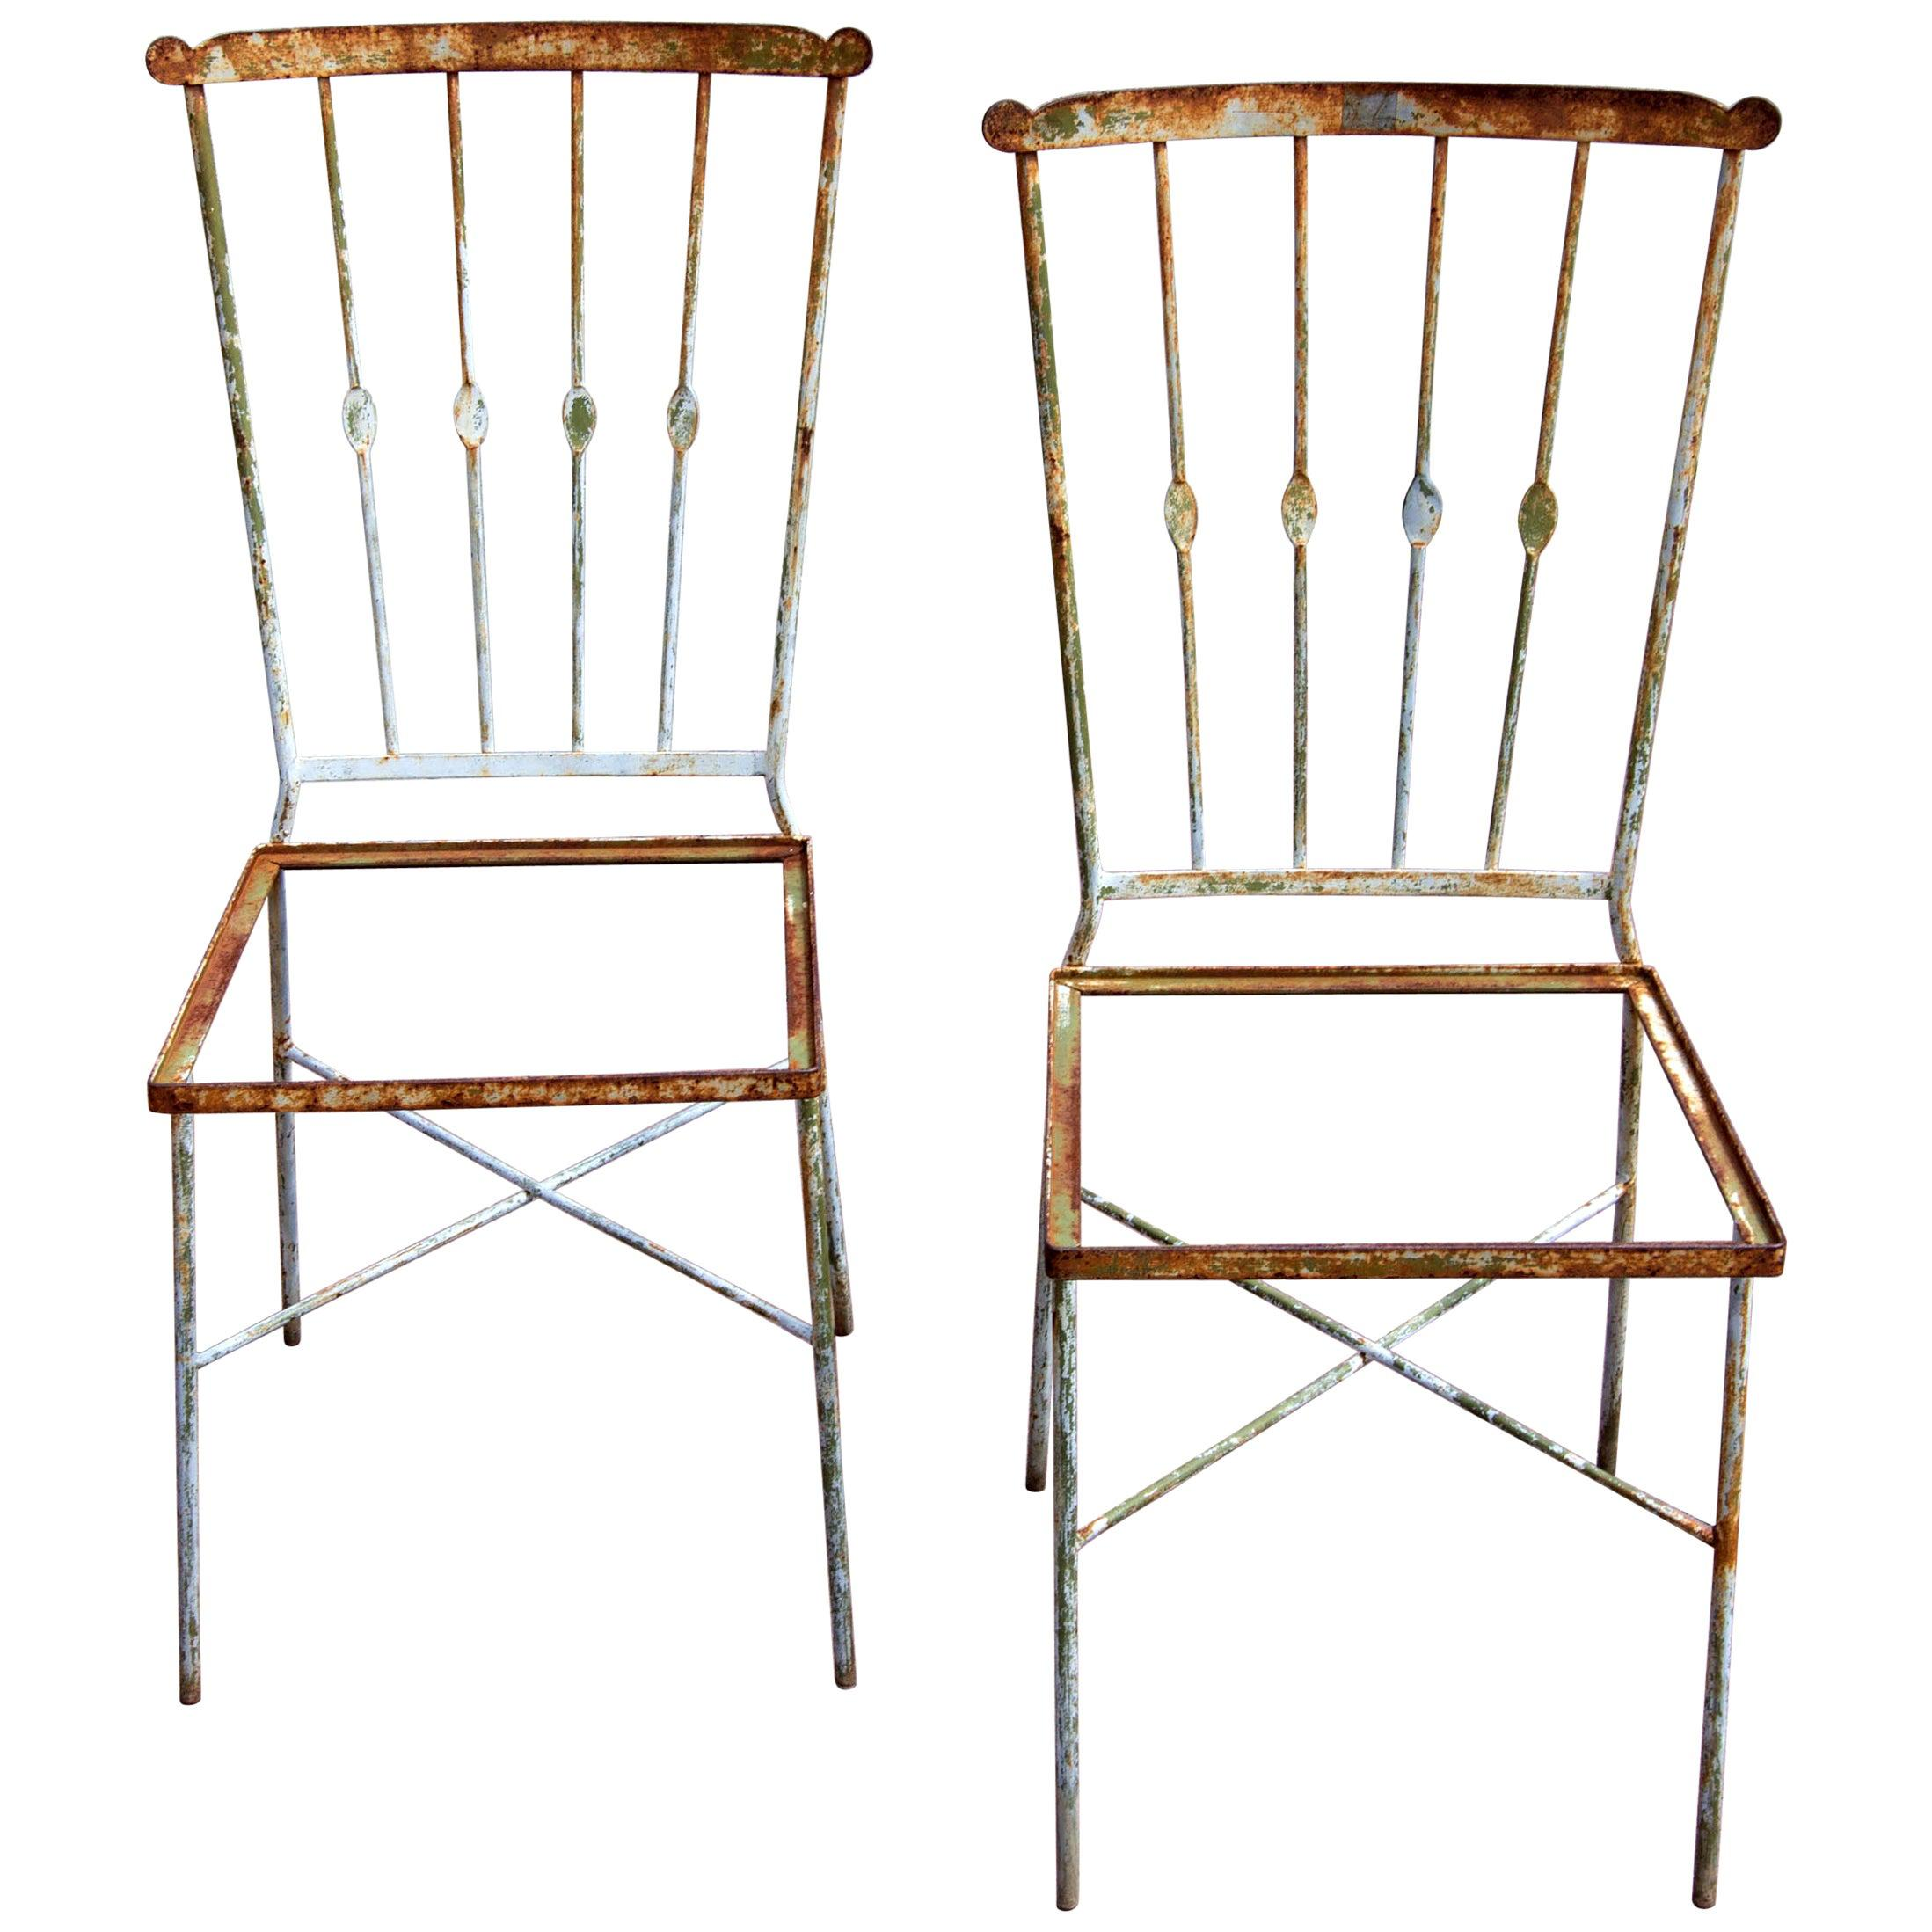 Pair of Wrought Iron Garden Chairs